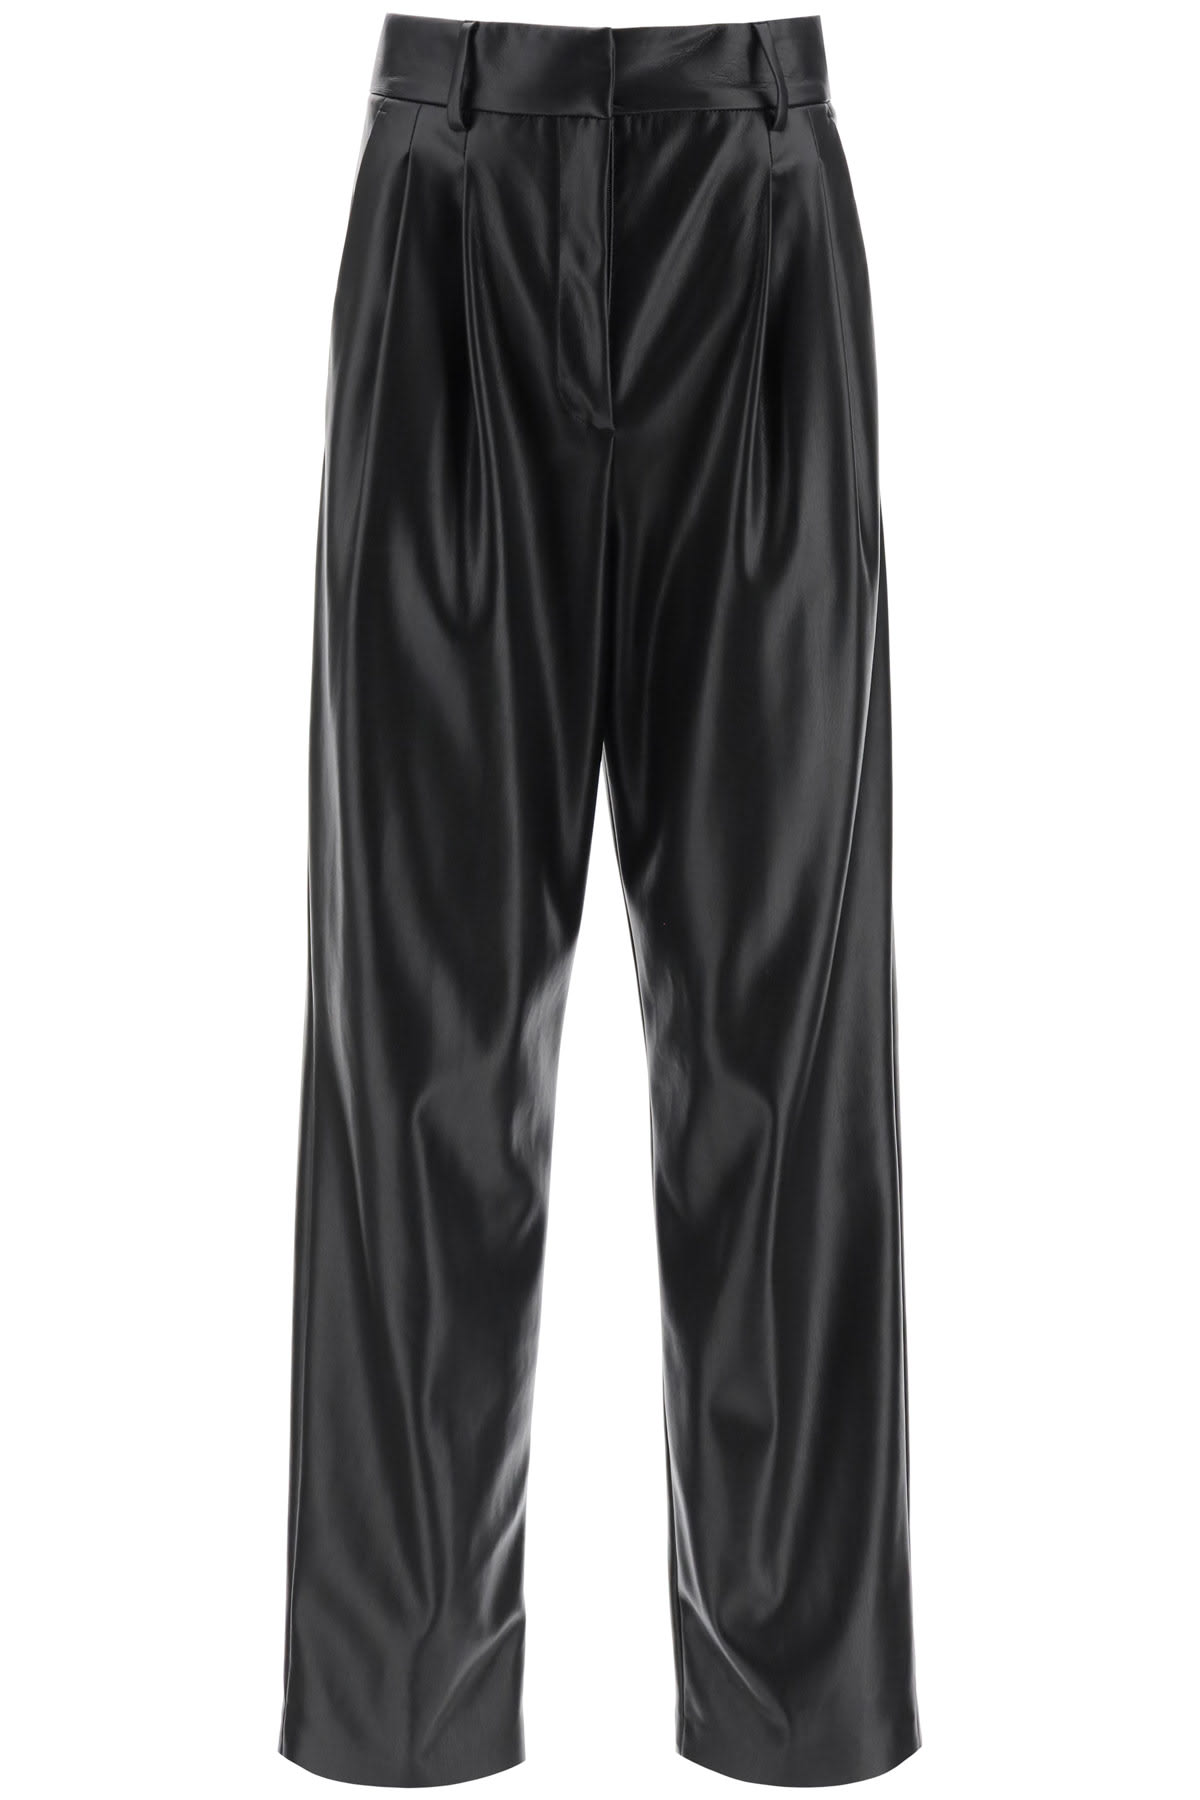 MSGM Faux Leather Loose Trousers